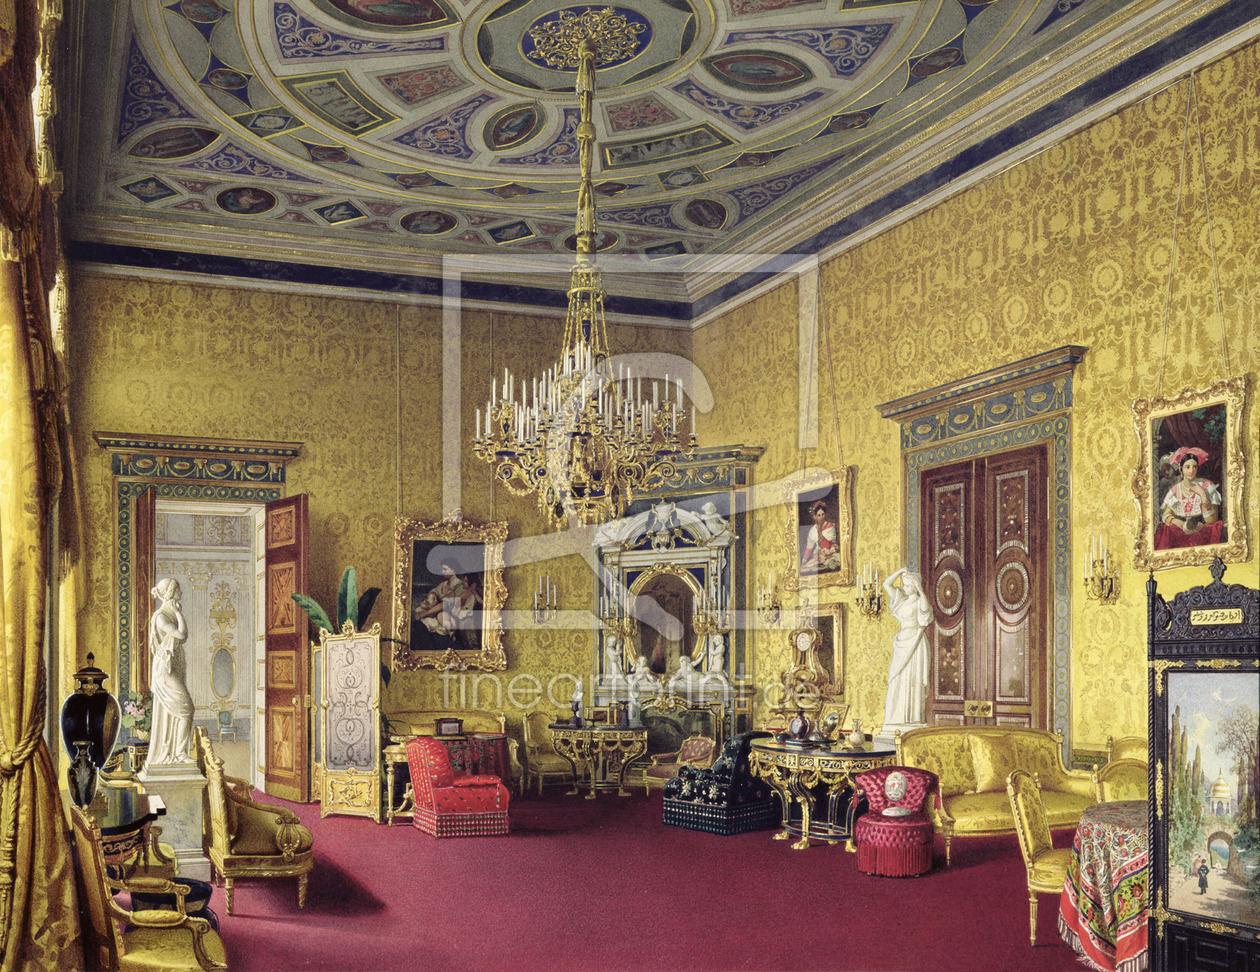 Bild-Nr.: 31002723 The Lyons Hall in the Catherine Palace at Tsarskoye Selo, 1859 erstellt von